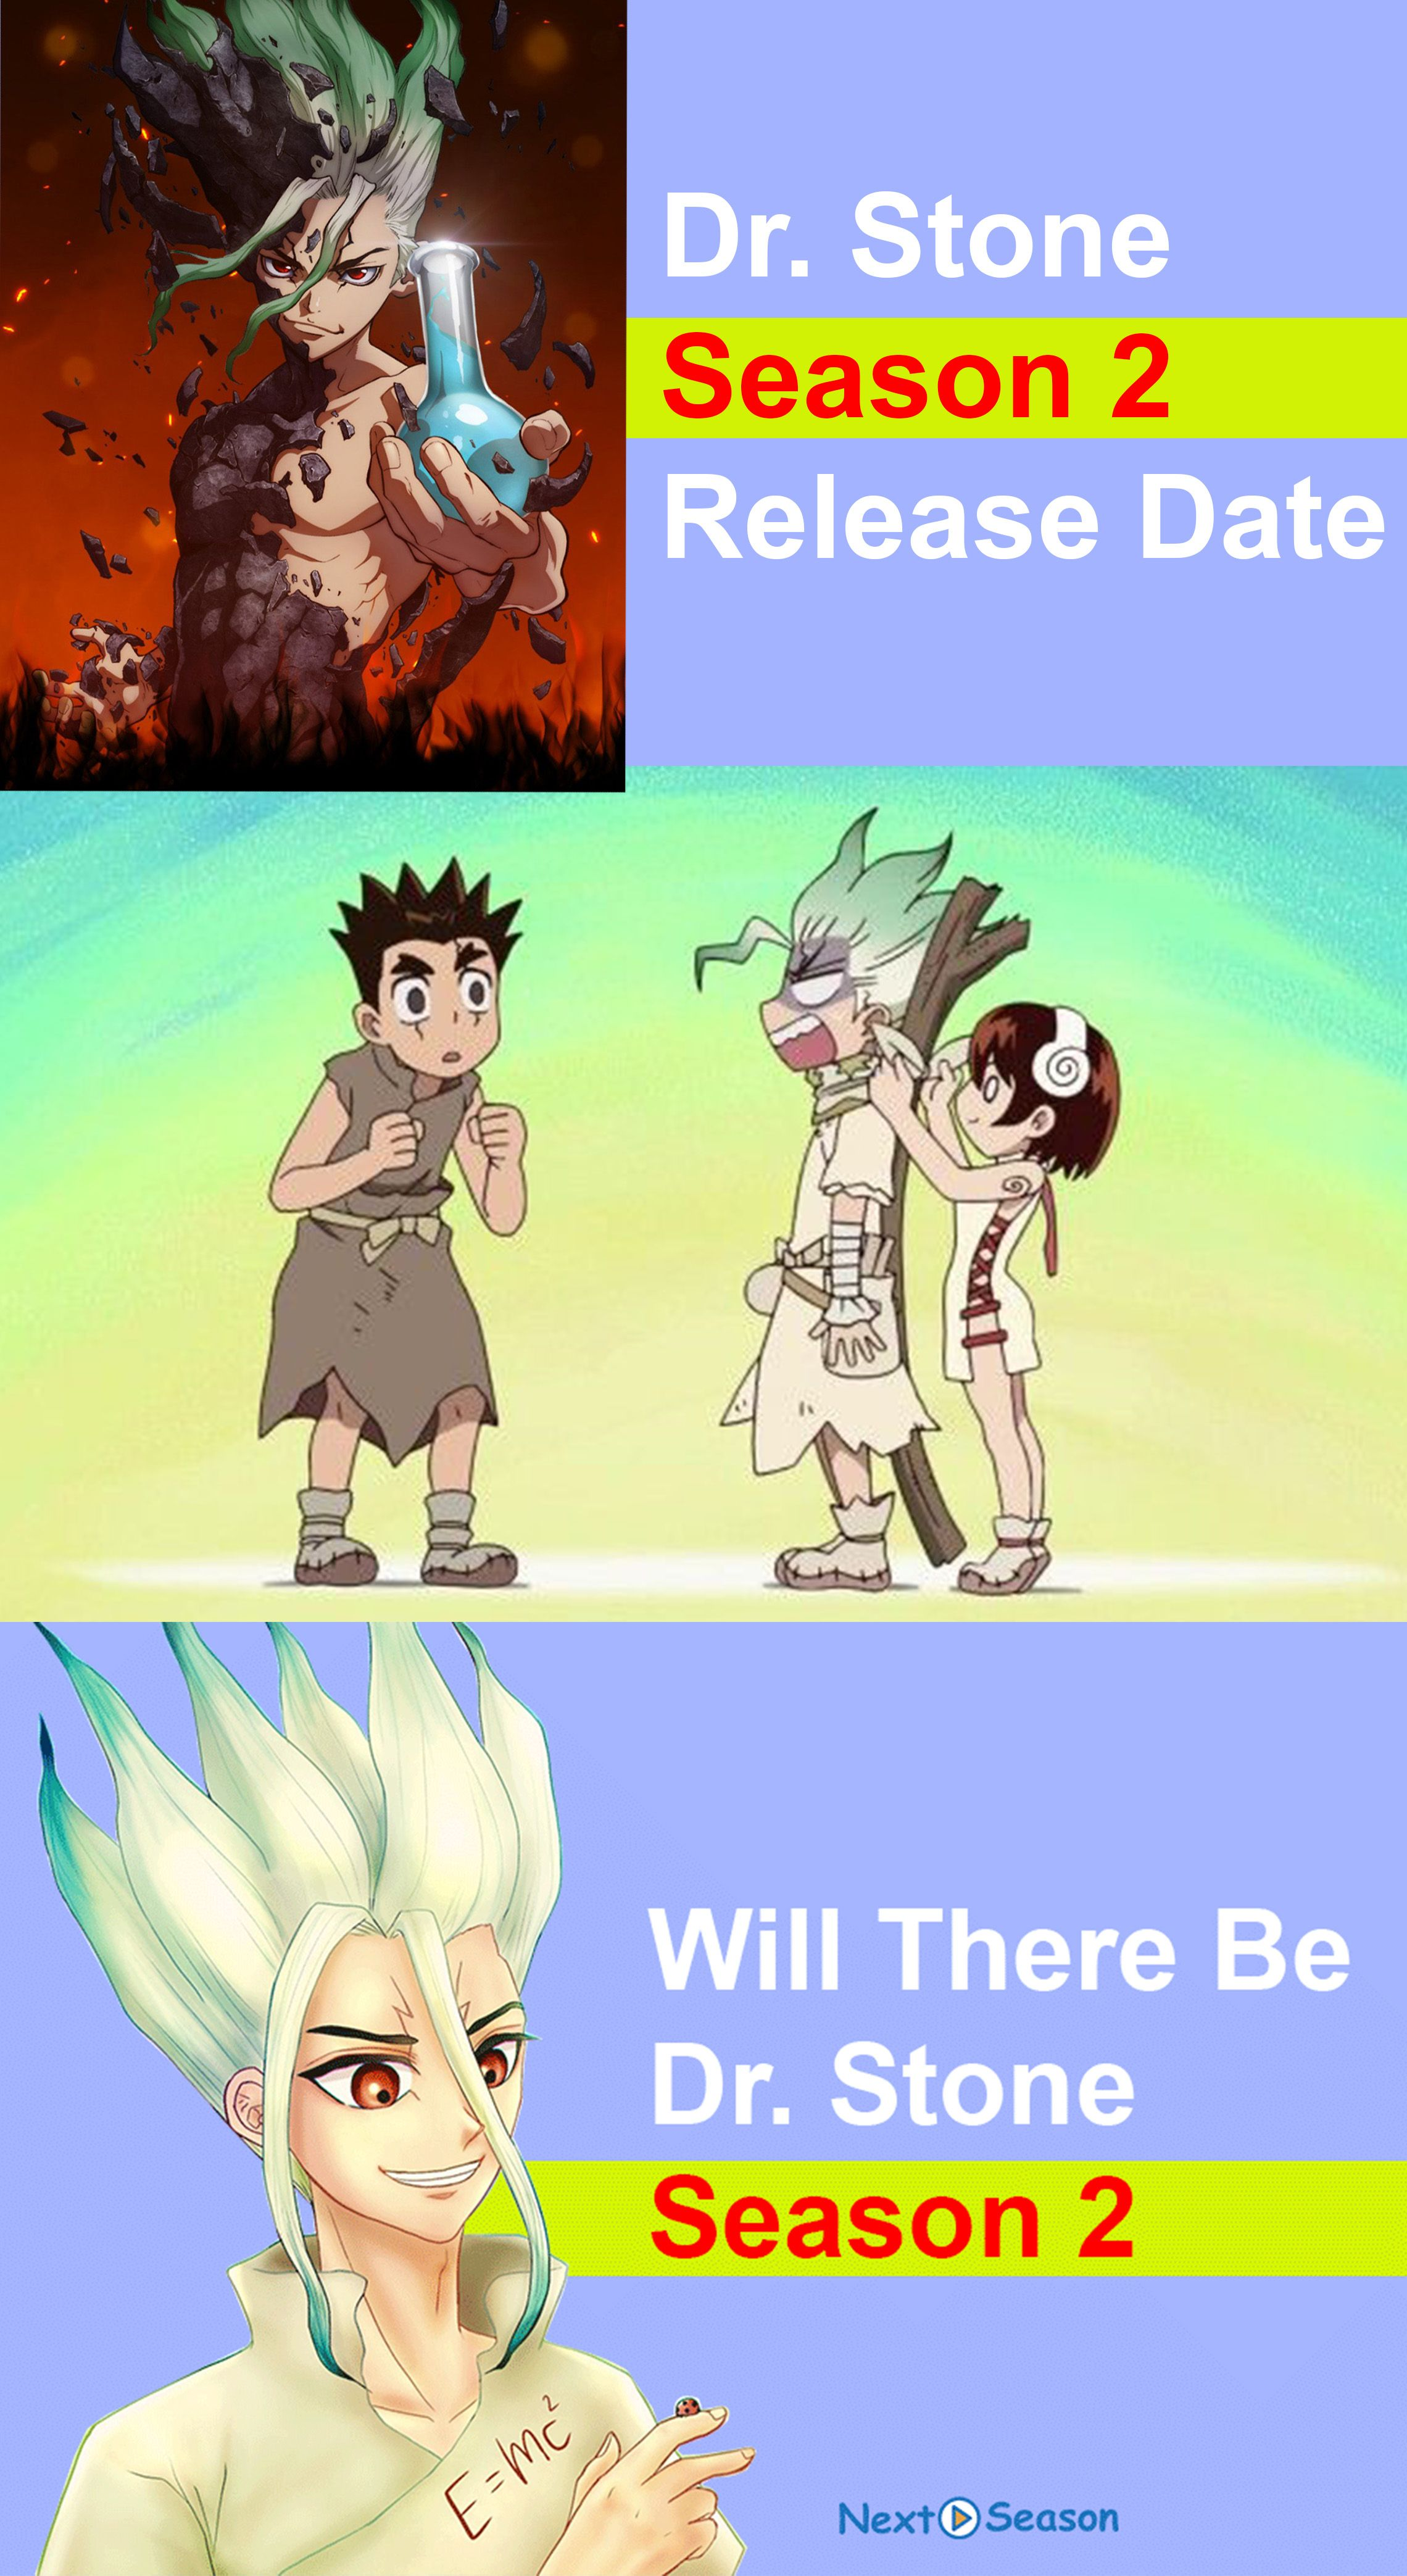 Dr Stone Season 2 Expected Release Date And Storyline Fantasy Adventure Anime Seasons Upcoming Anime